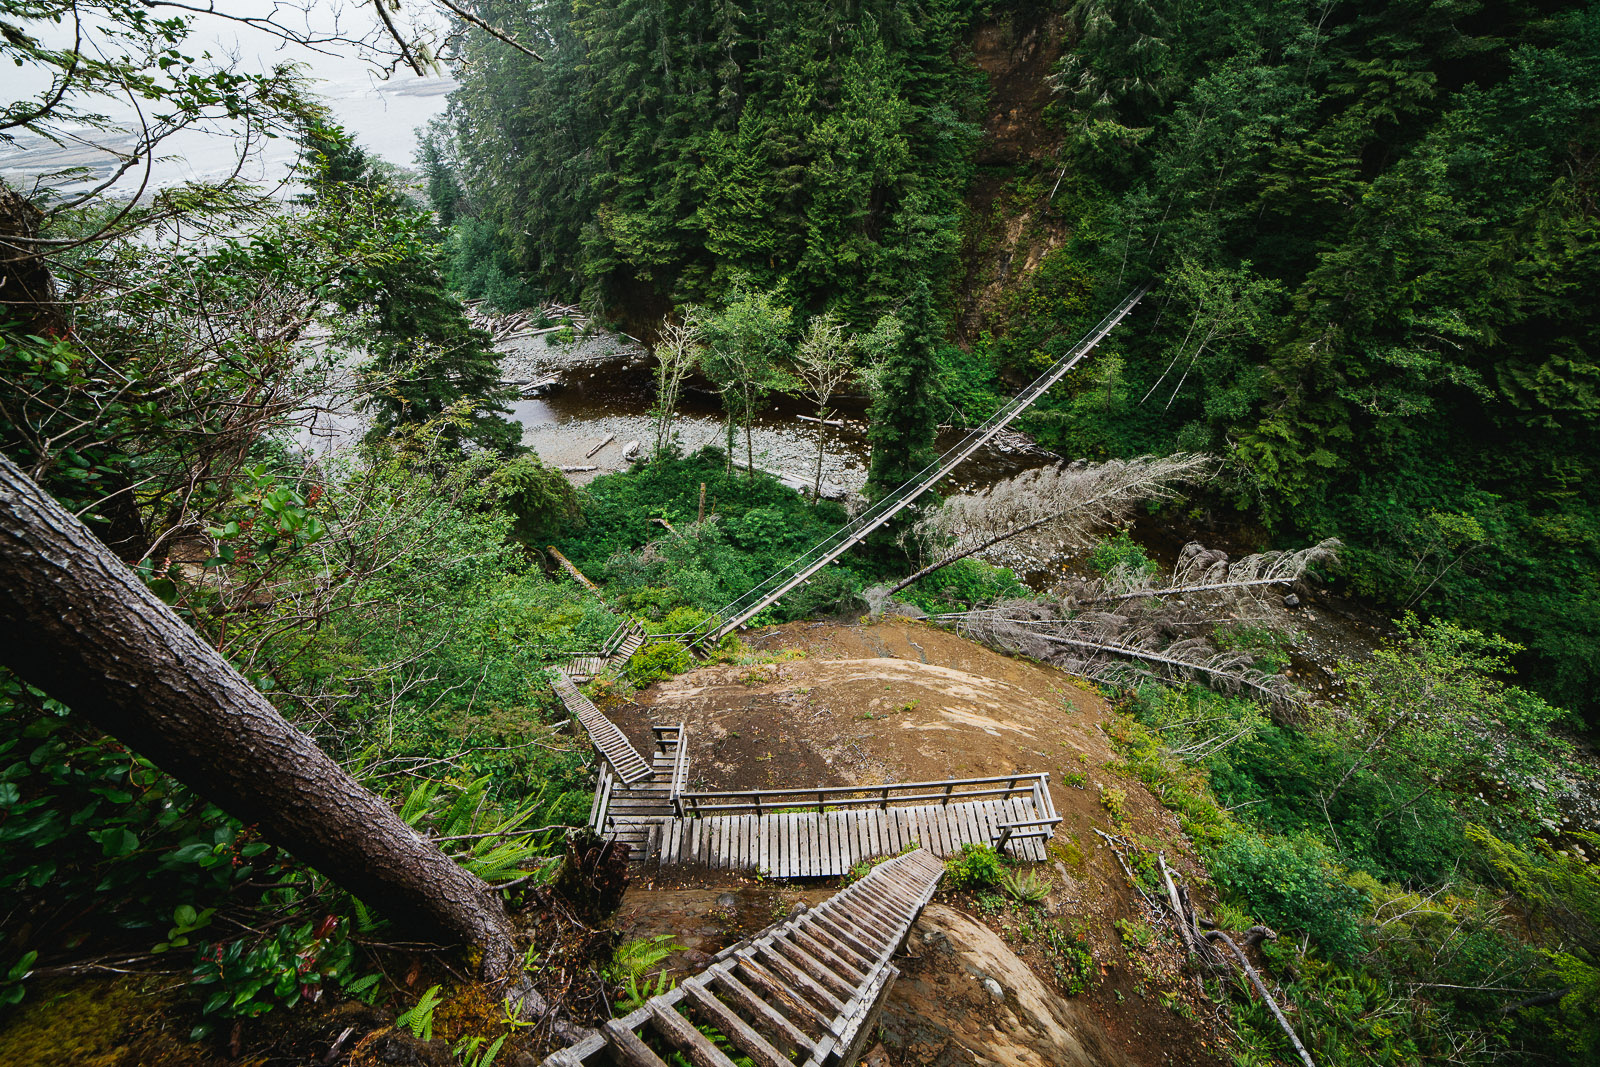 1000 Ideas About West Coast Trail On Pinterest West Coast Vancouver Island And British Columbia